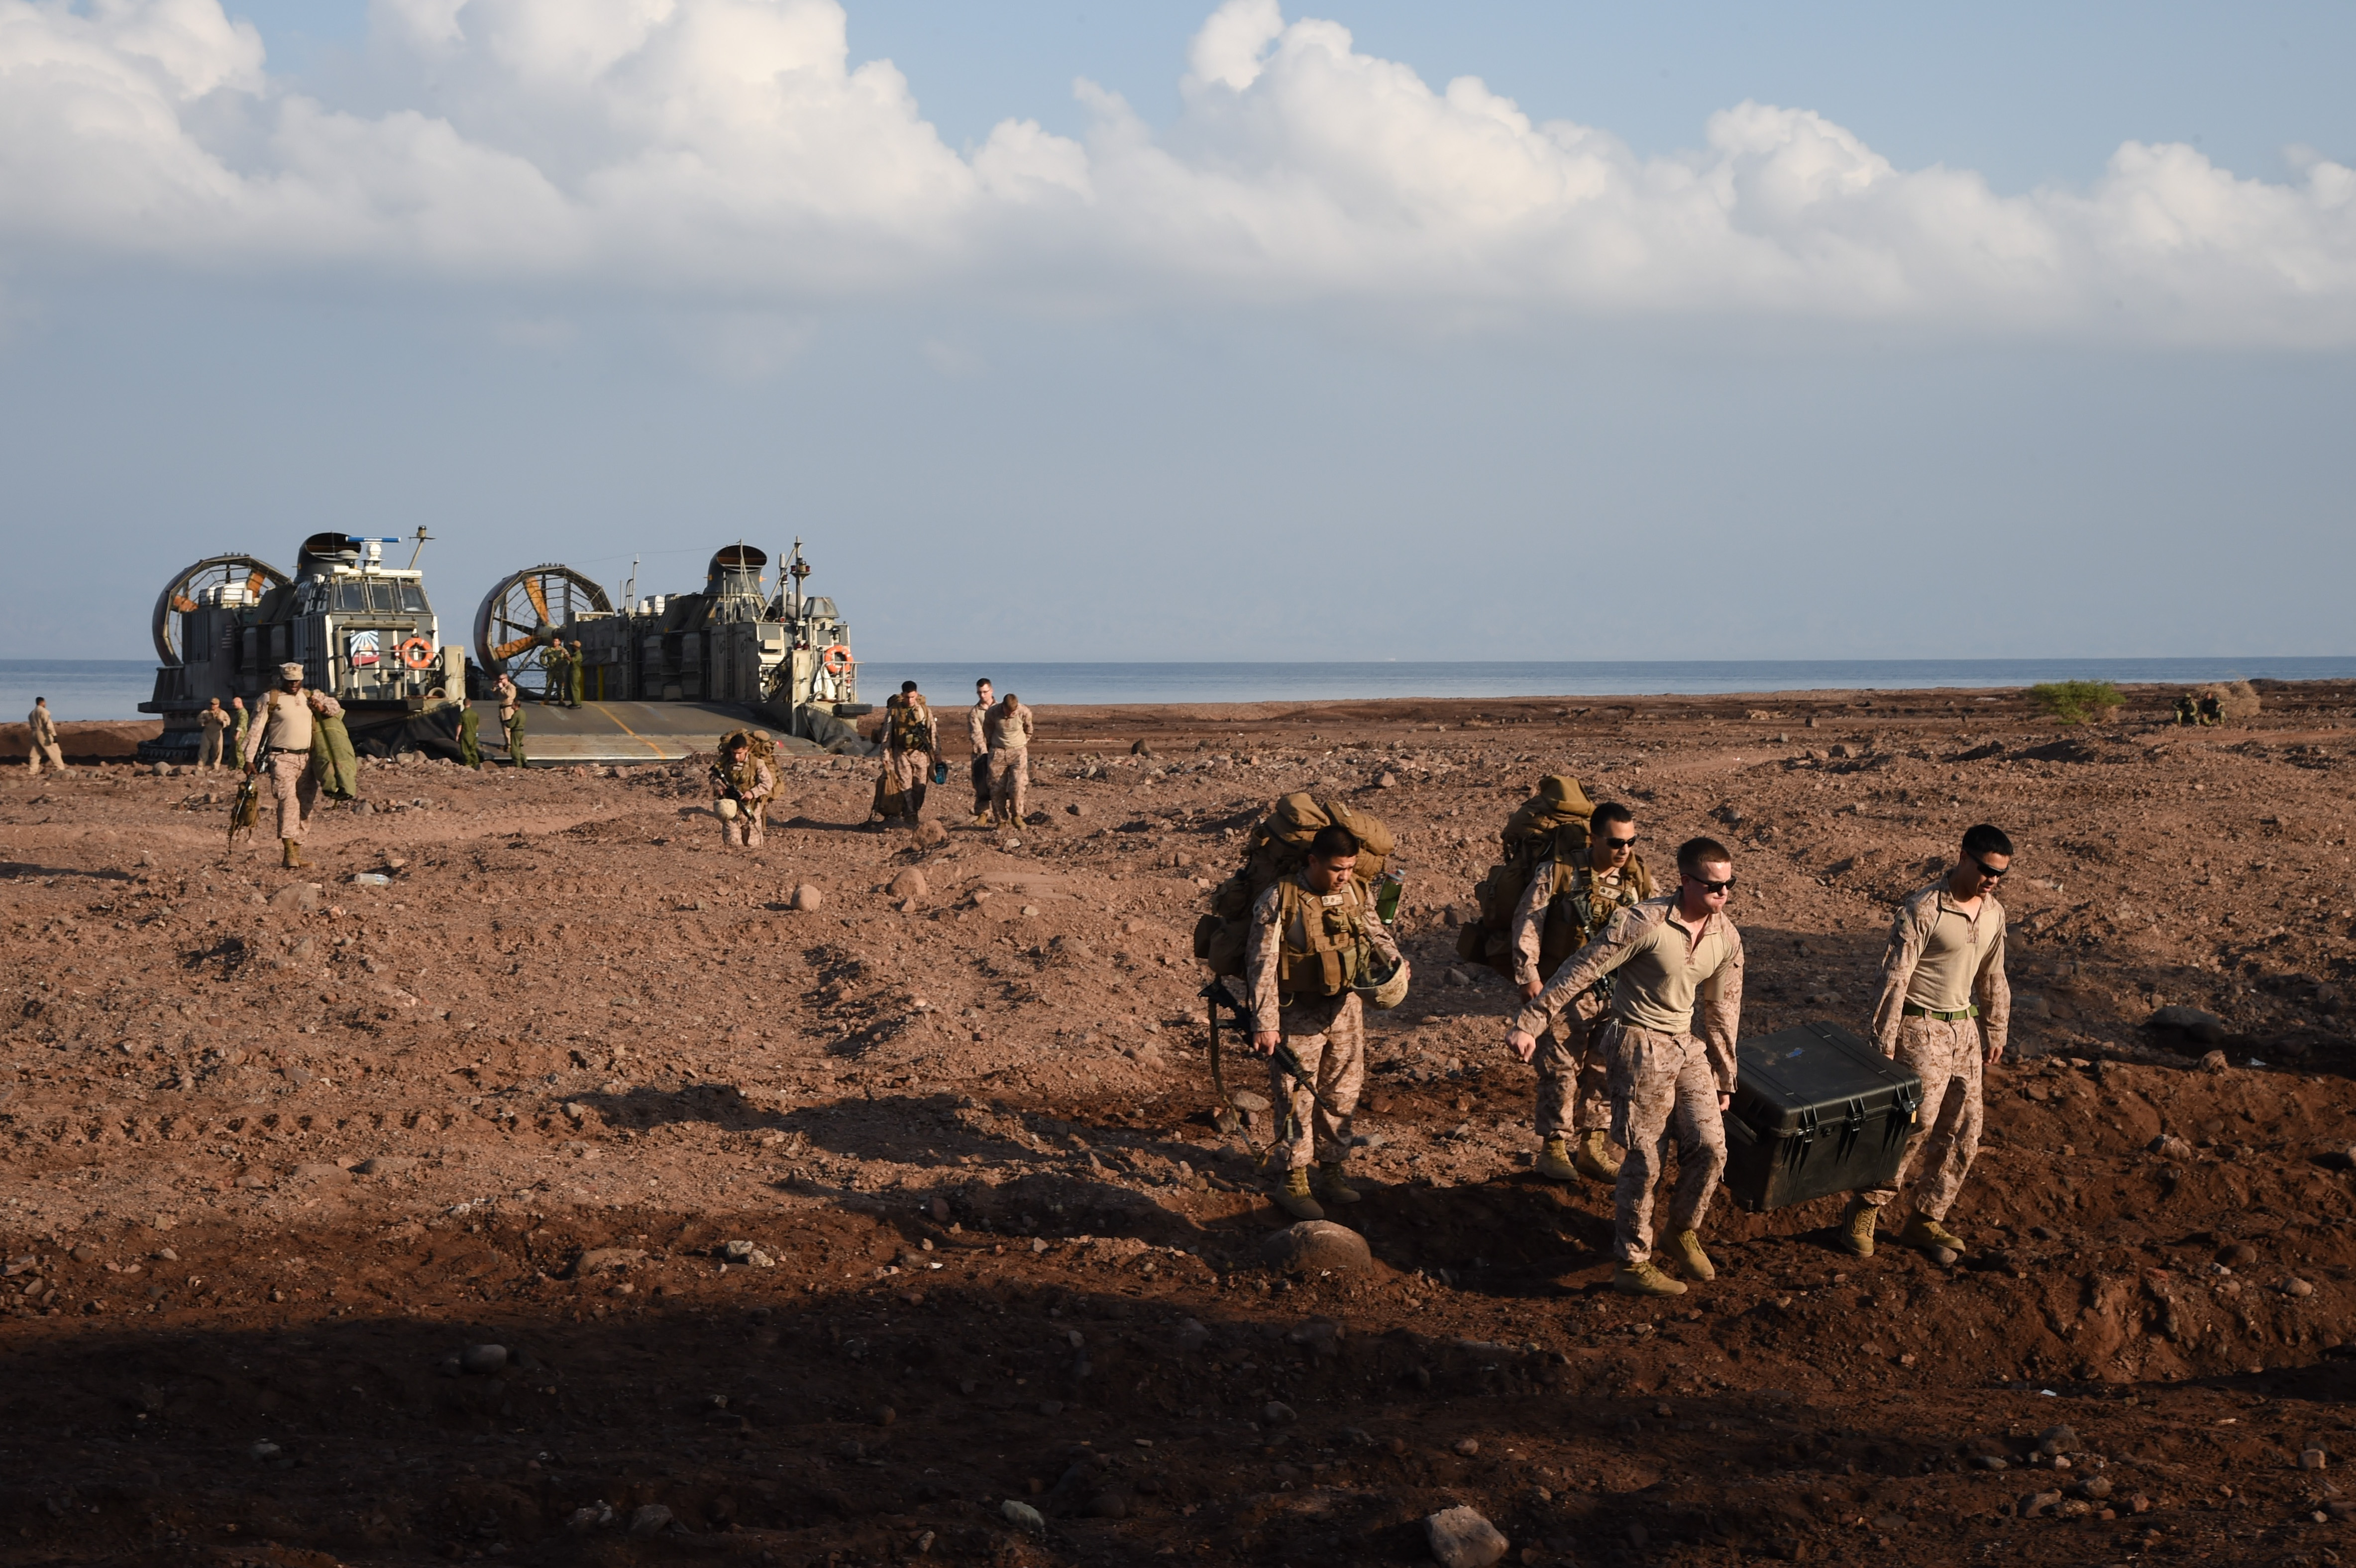 U.S. Marine Corps combat logistics battalion members with the 11th Marine Expeditionary Unit, offload from a Landing Craft Air Cushion (LCAC) amphibious vehicle, Dec. 7, 2016, at Arta Plage, Djibouti. The capabilities of the LCAC permit crucial access for up to 75 tons worth of passengers and cargo to be transported from ship-to-shore. (U.S. Air National Guard photo by Staff Sgt. Penny Snoozy)